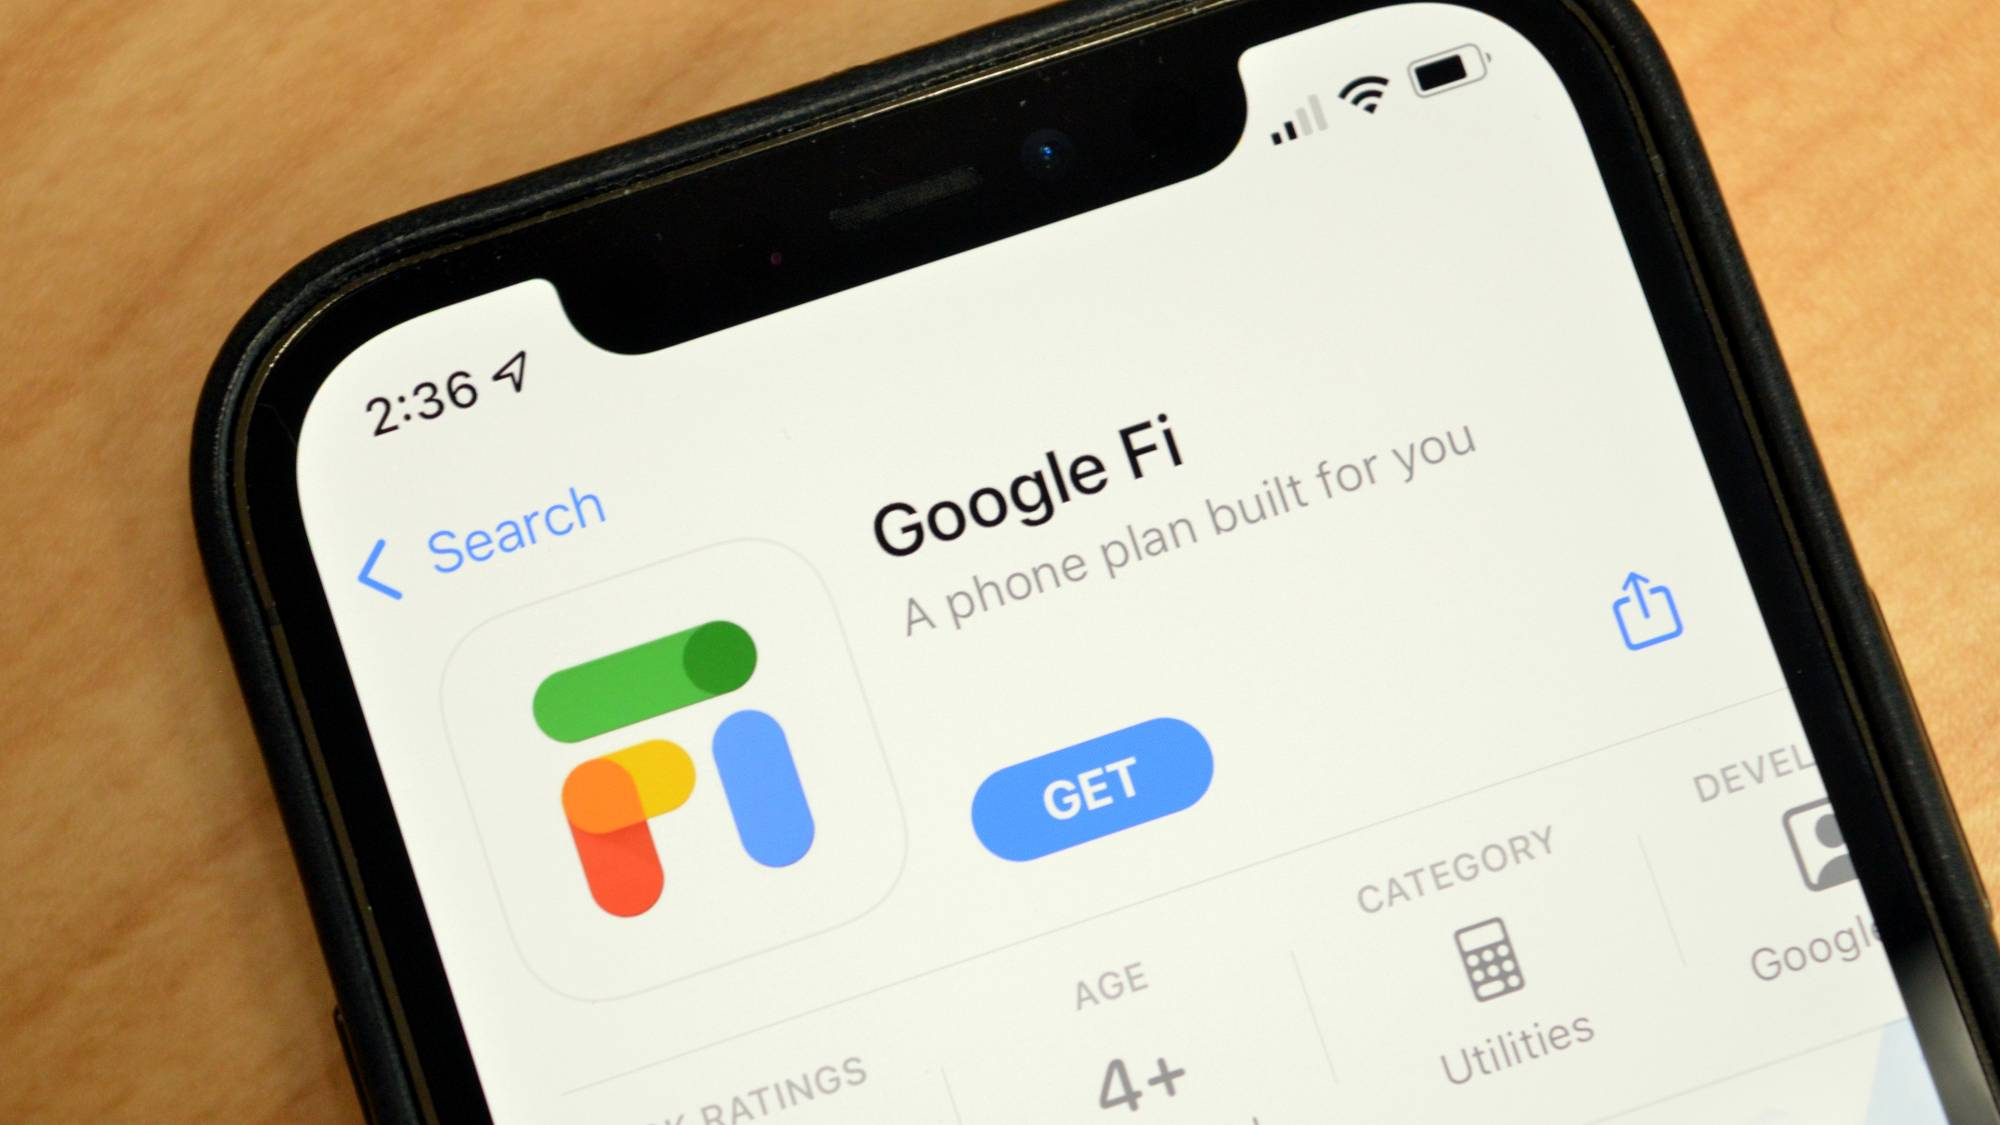 Google Fi VPN is now on hand on iPhone